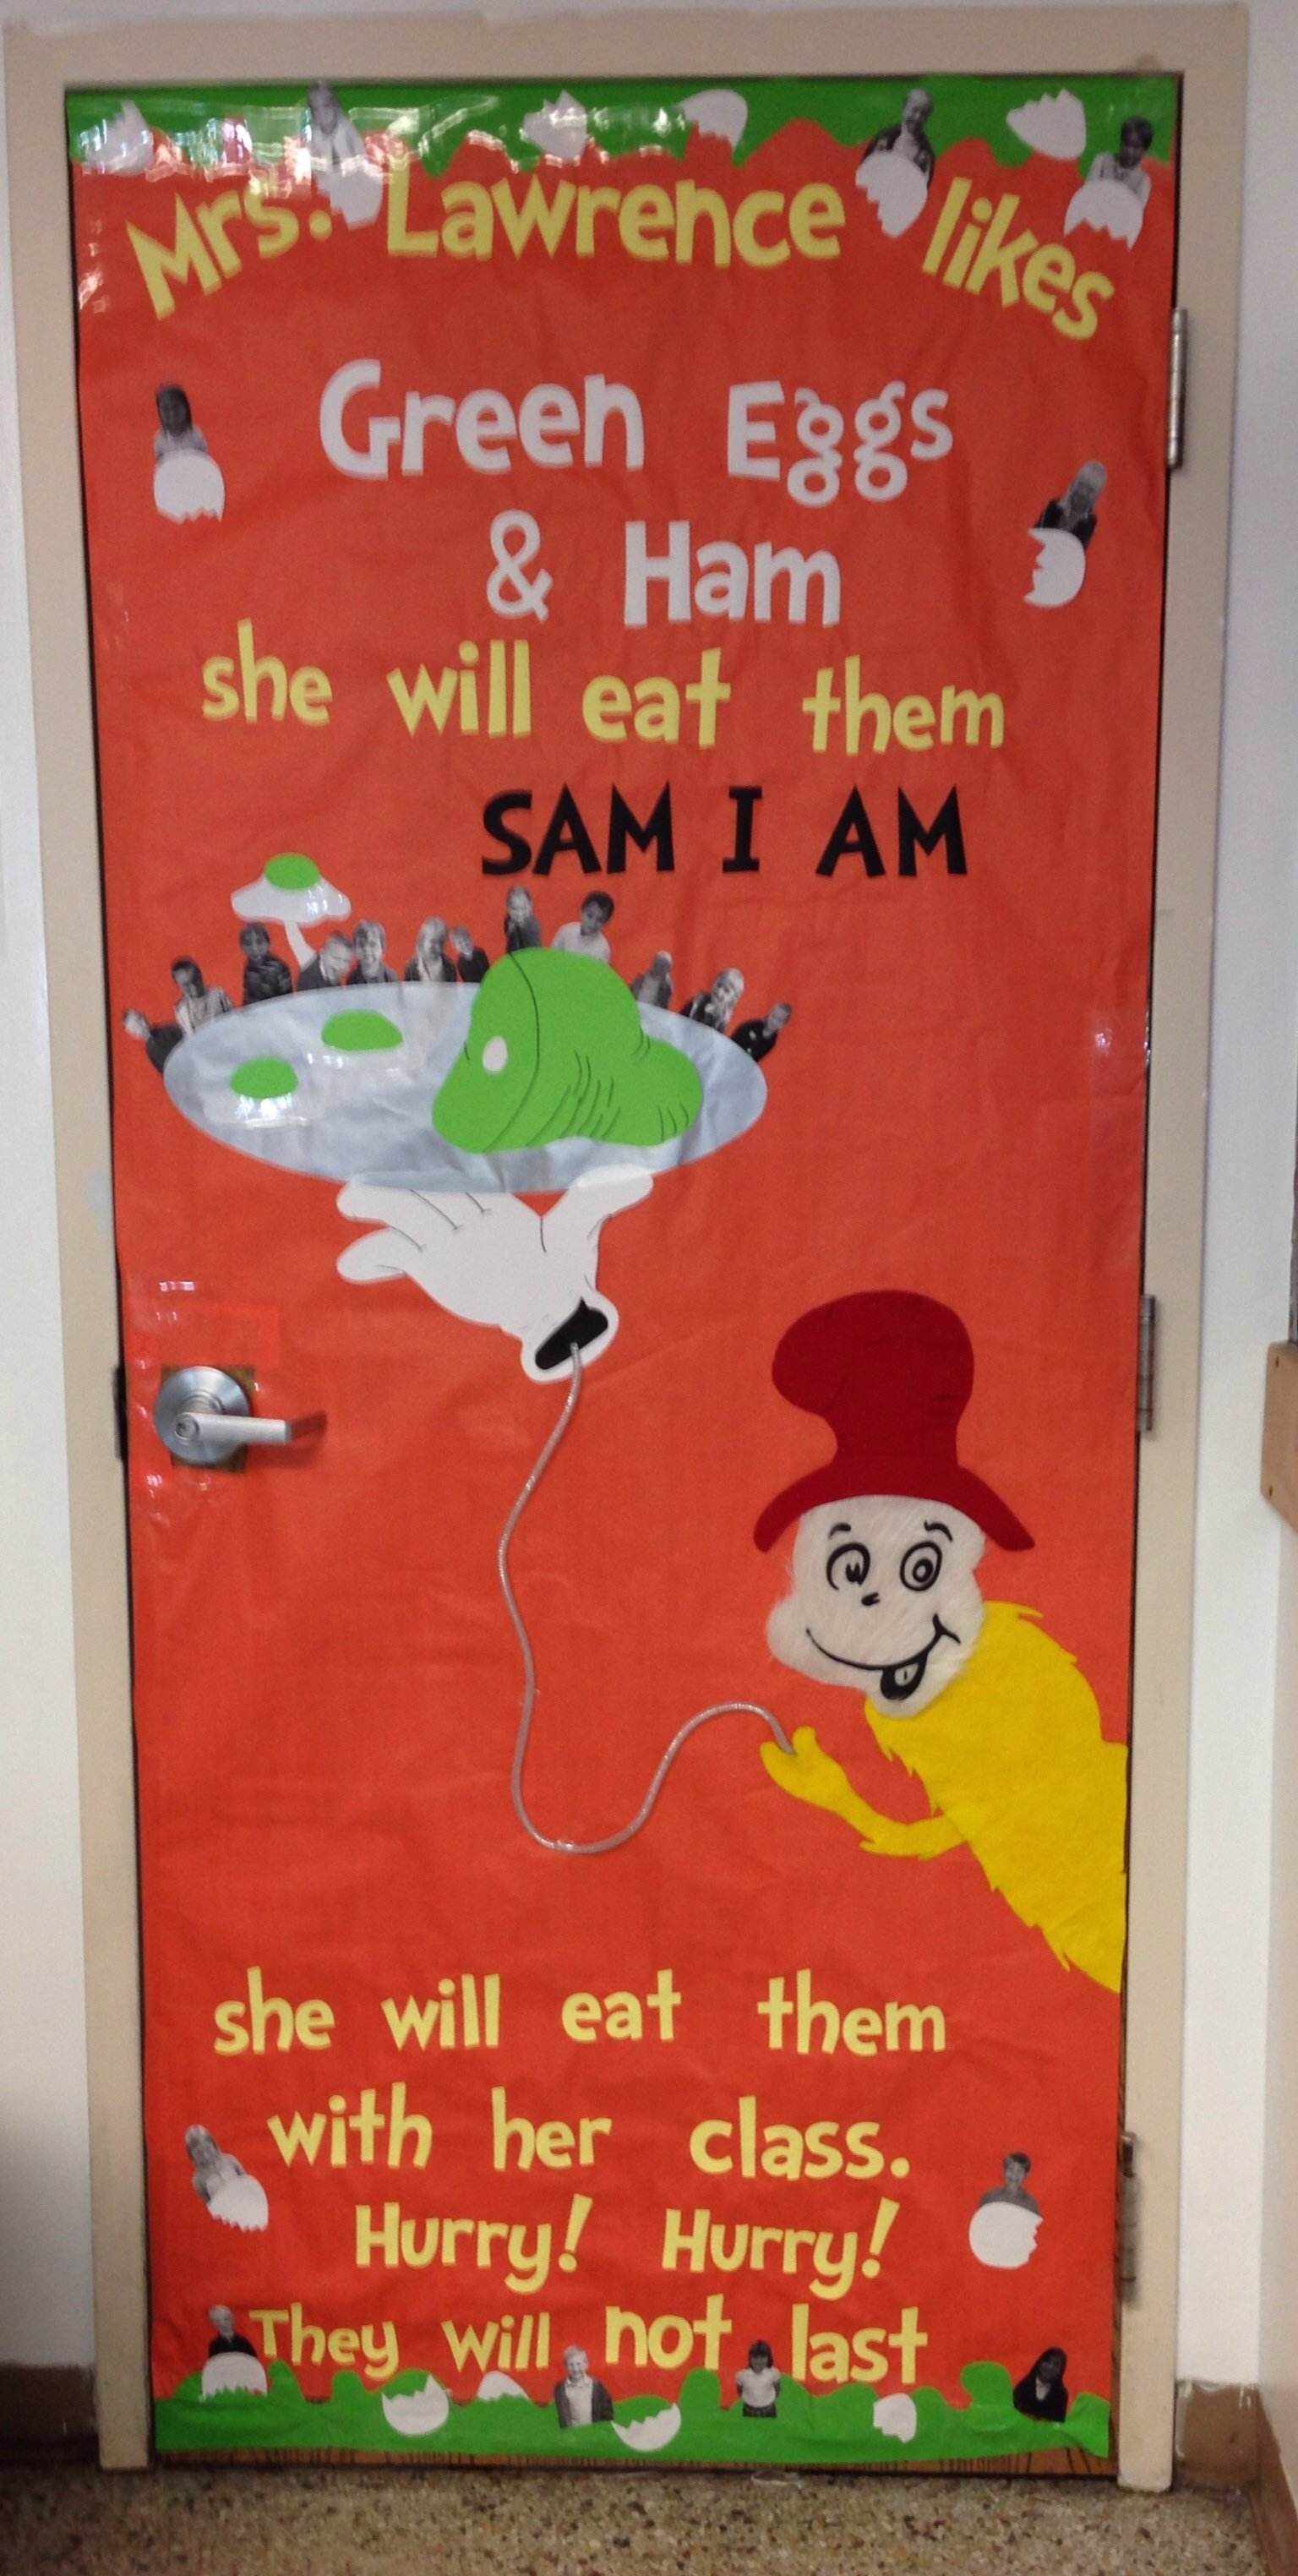 10 Best Green Eggs And Ham Craft Ideas green eggs and ham door decorating will keep student engagement 2020